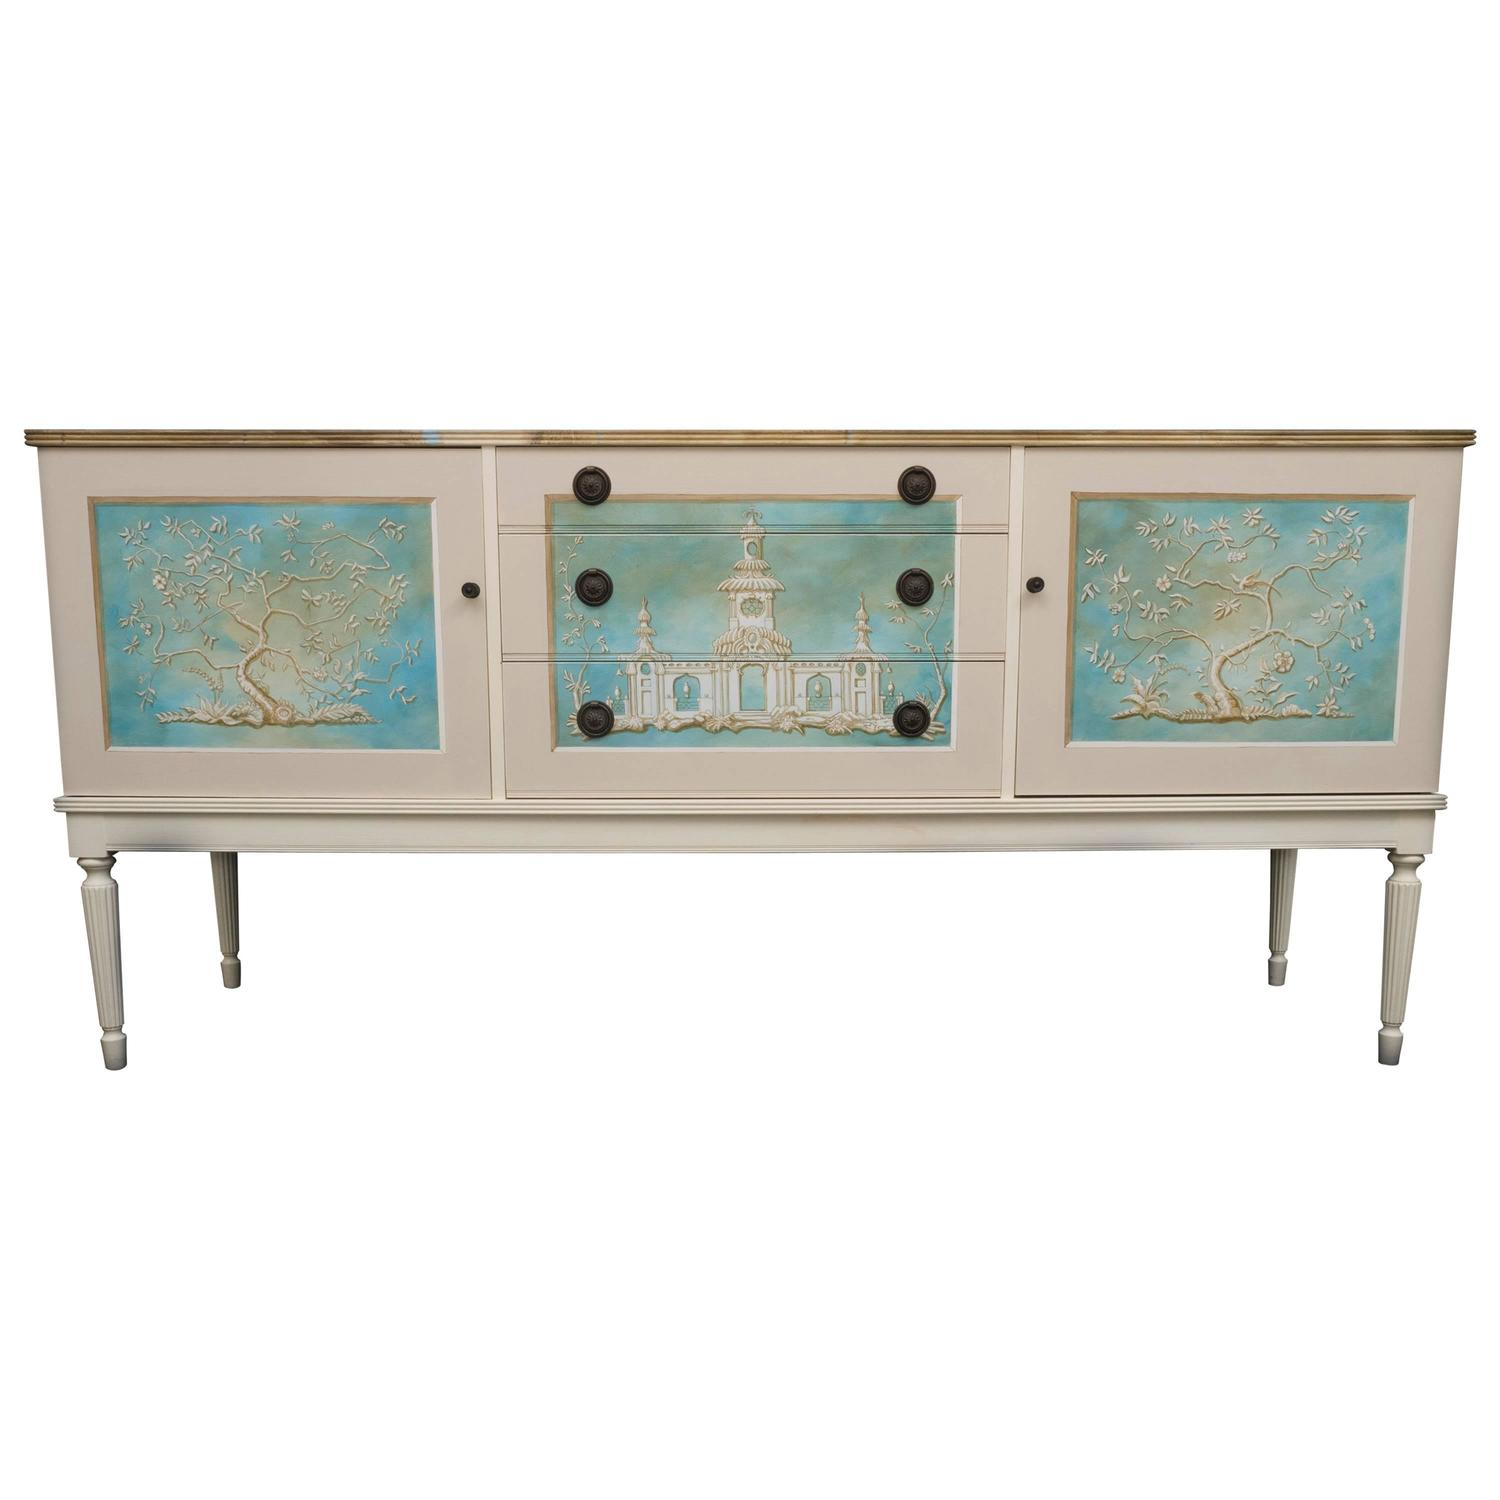 greaves thomas mid century british sideboard hand painted by kensa designs for sale at 1stdibs. Black Bedroom Furniture Sets. Home Design Ideas